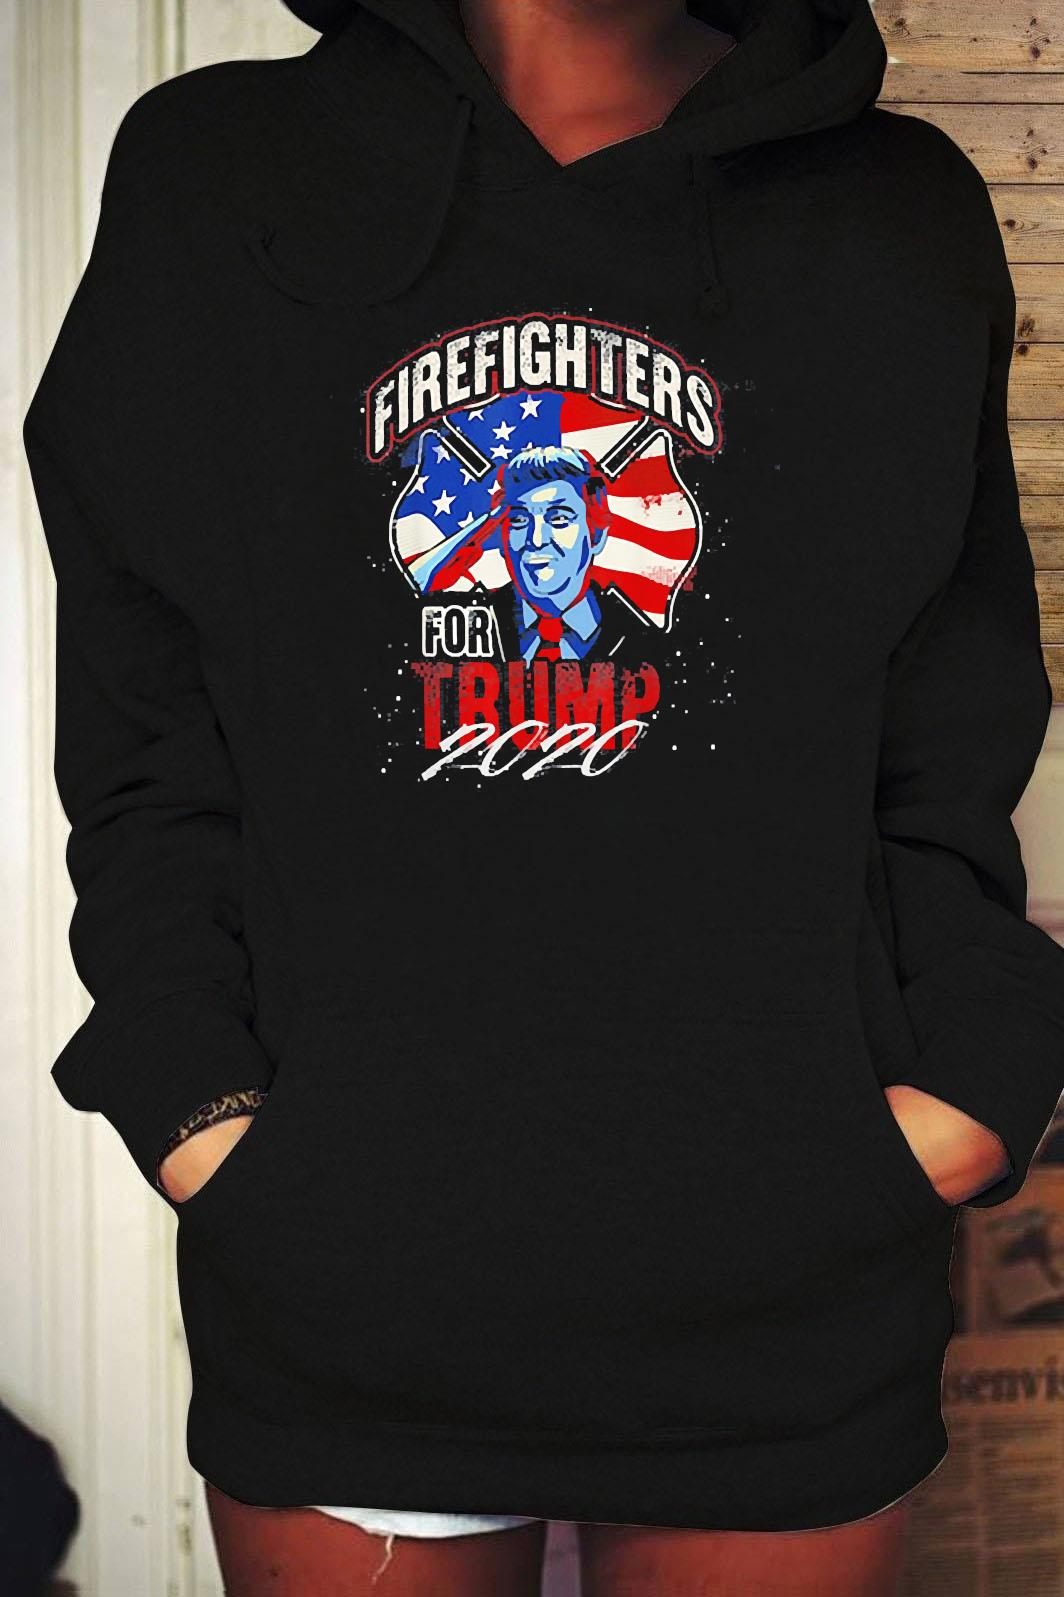 Firefighters For Trump 2020 Fire Fighter Shirt Hoodie